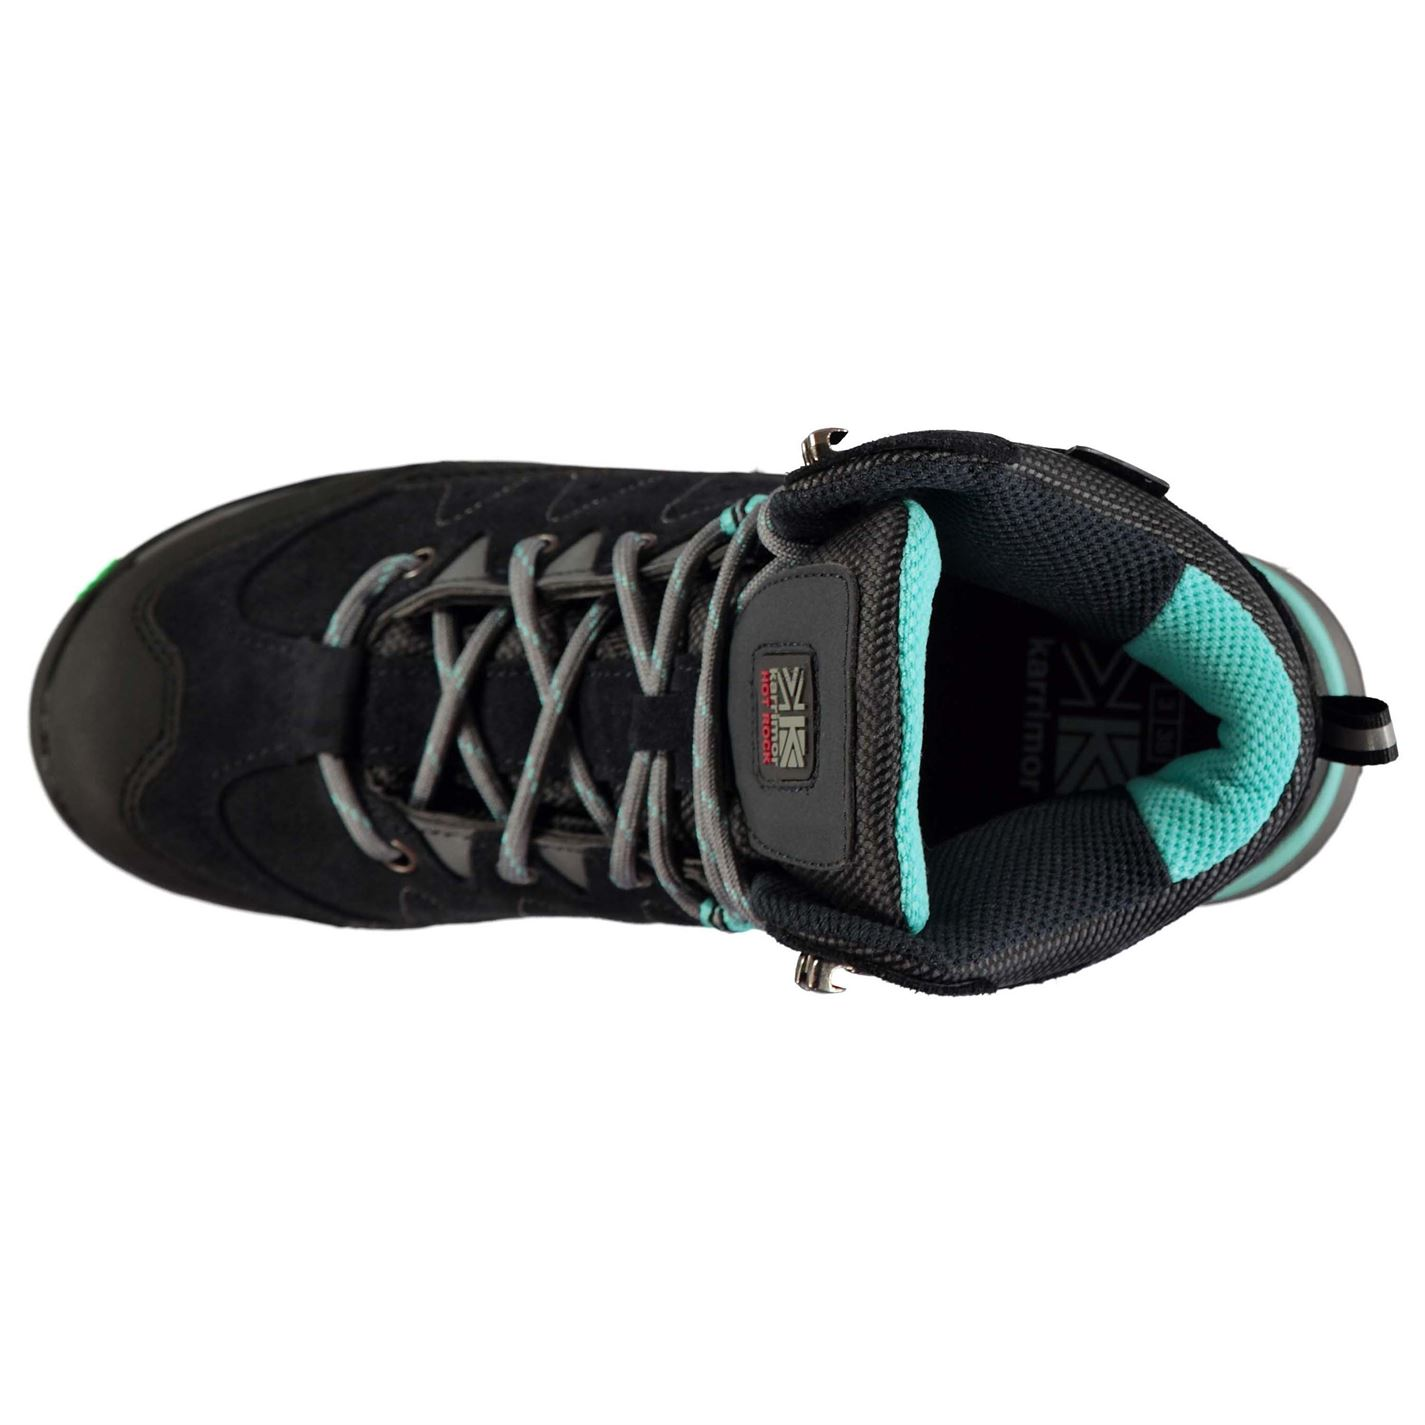 Karrimor Hot Rock jeune Walking Boots Childrens Ventilé Hydrofuge